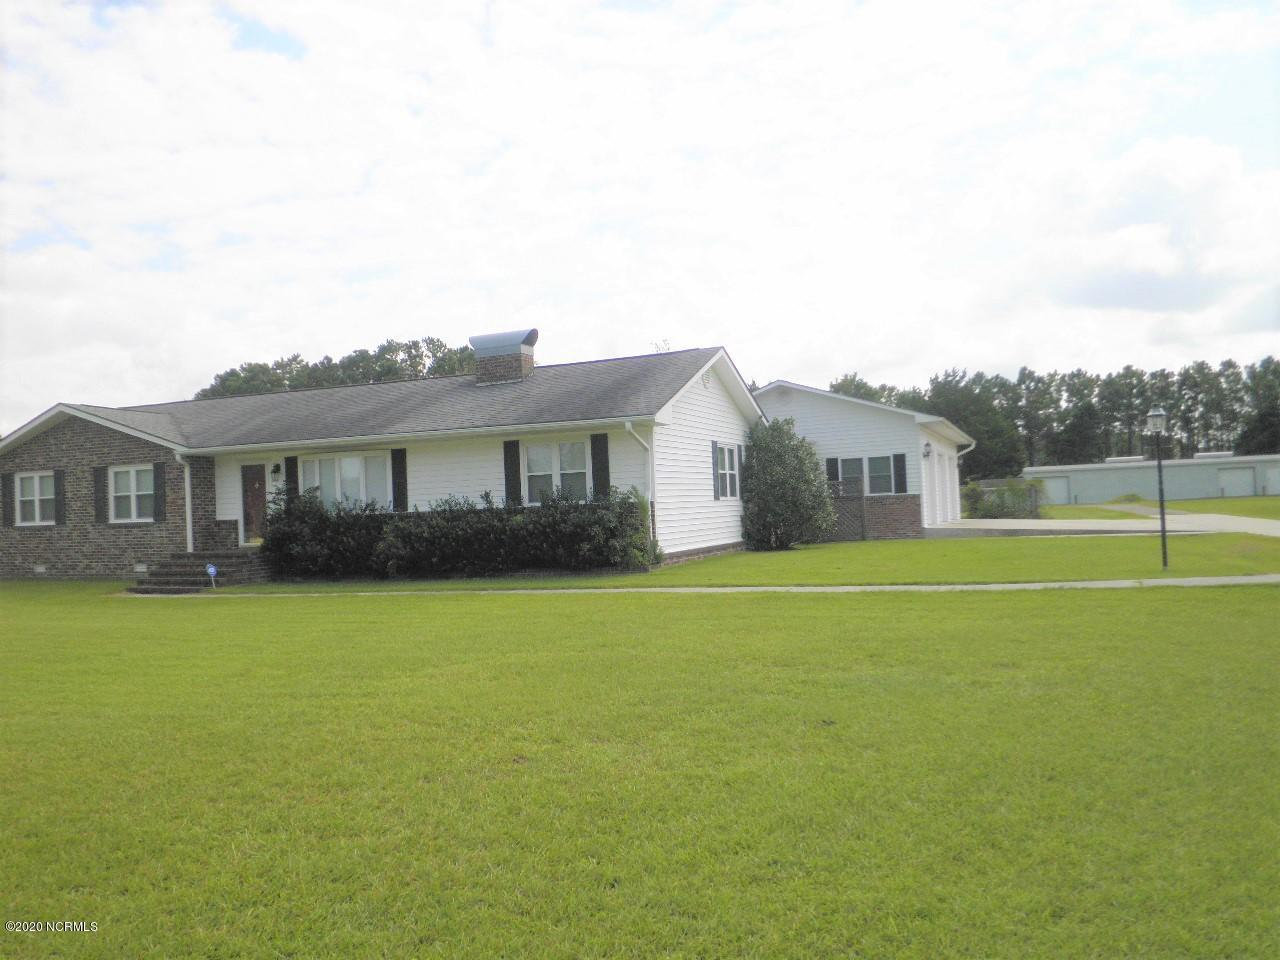 190 Norris Road, Swansboro, North Carolina 28584, 3 Bedrooms Bedrooms, ,2 BathroomsBathrooms,Residential,For Sale,Norris,100234372